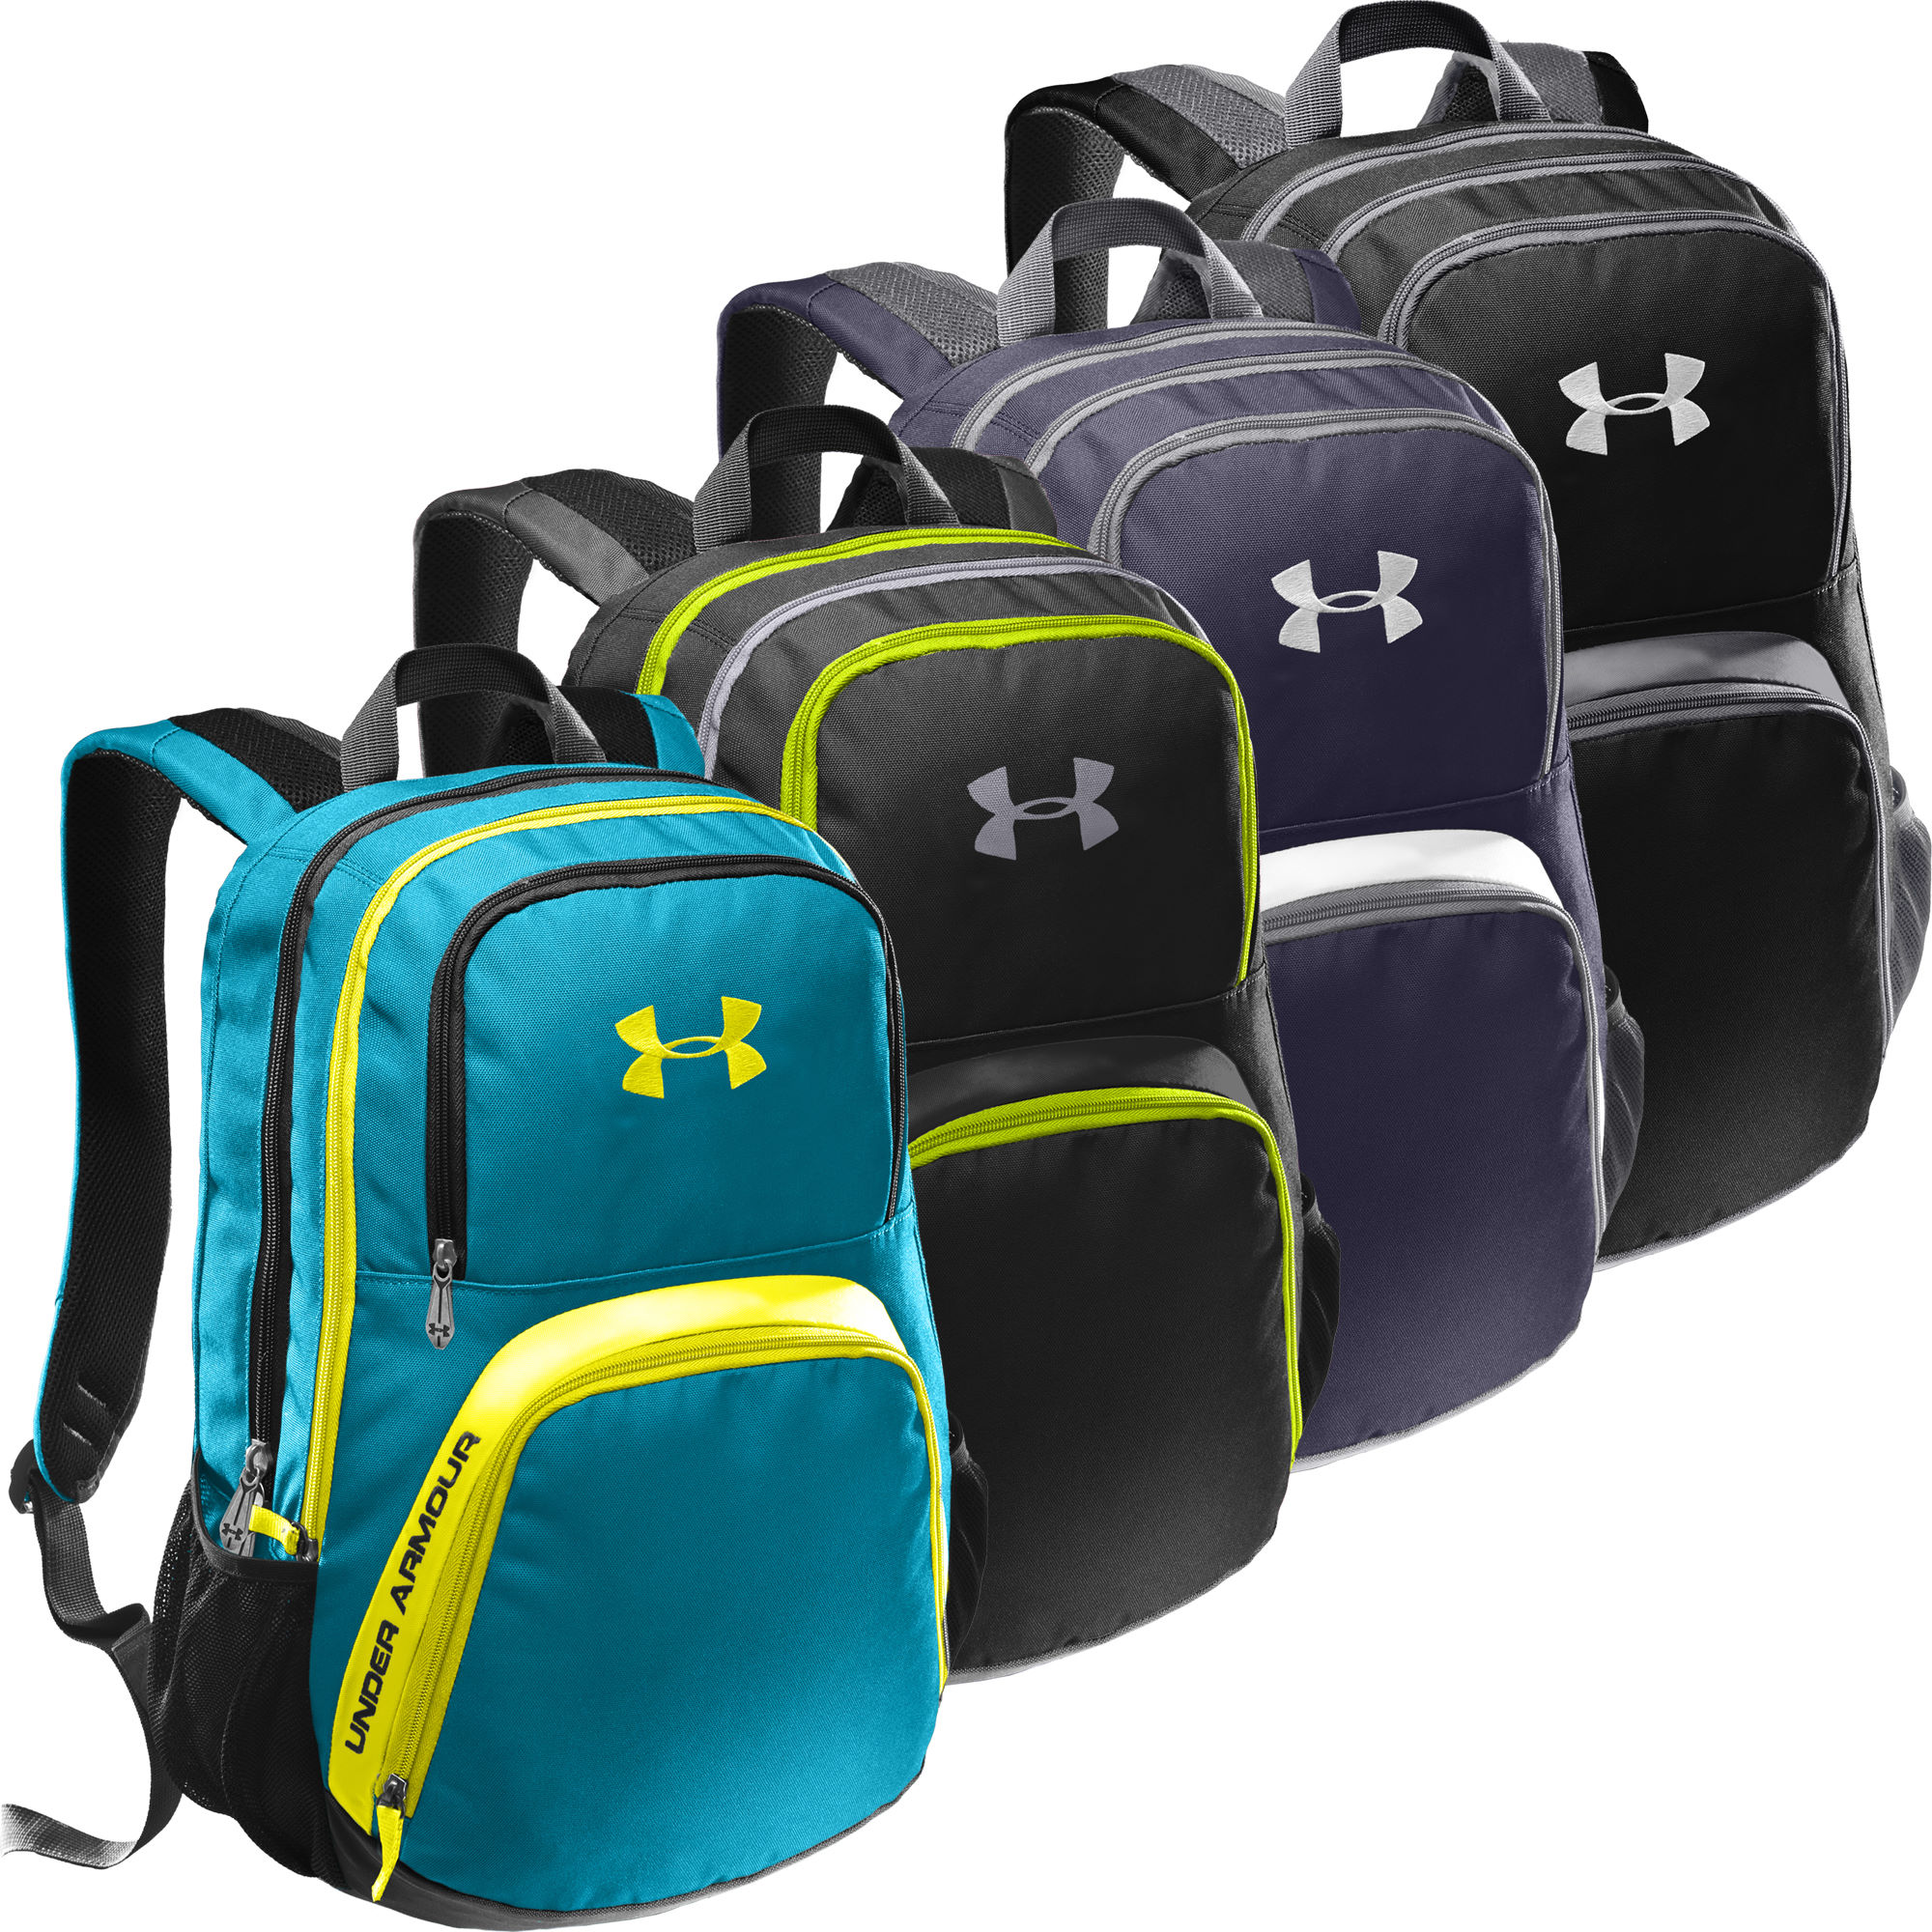 sacs dos under armour pth victory rucksack 21 litres wiggle france. Black Bedroom Furniture Sets. Home Design Ideas